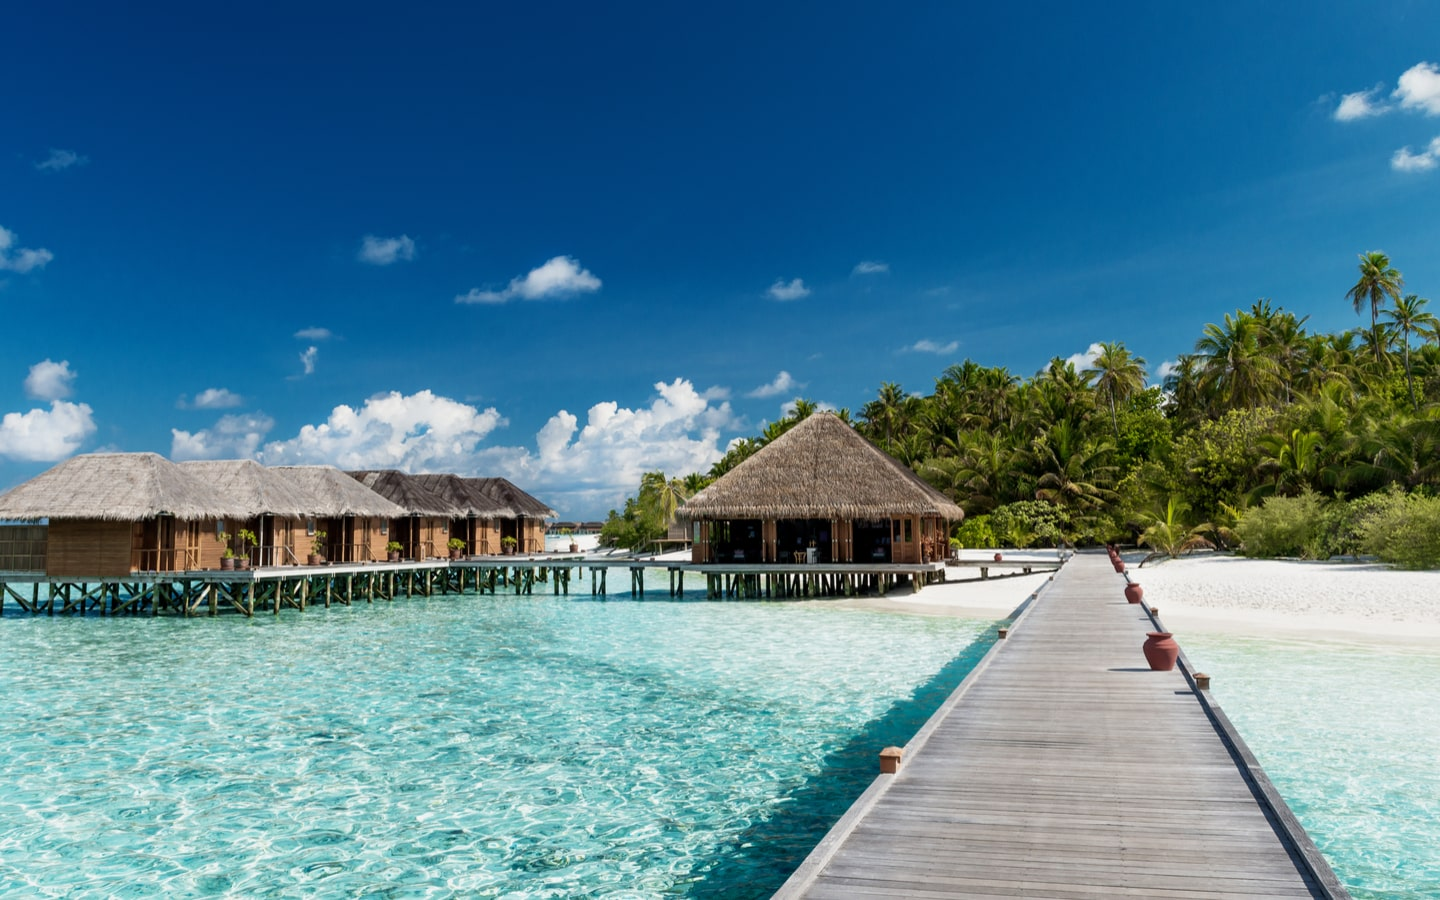 View of overwater villas and beach in Maldives